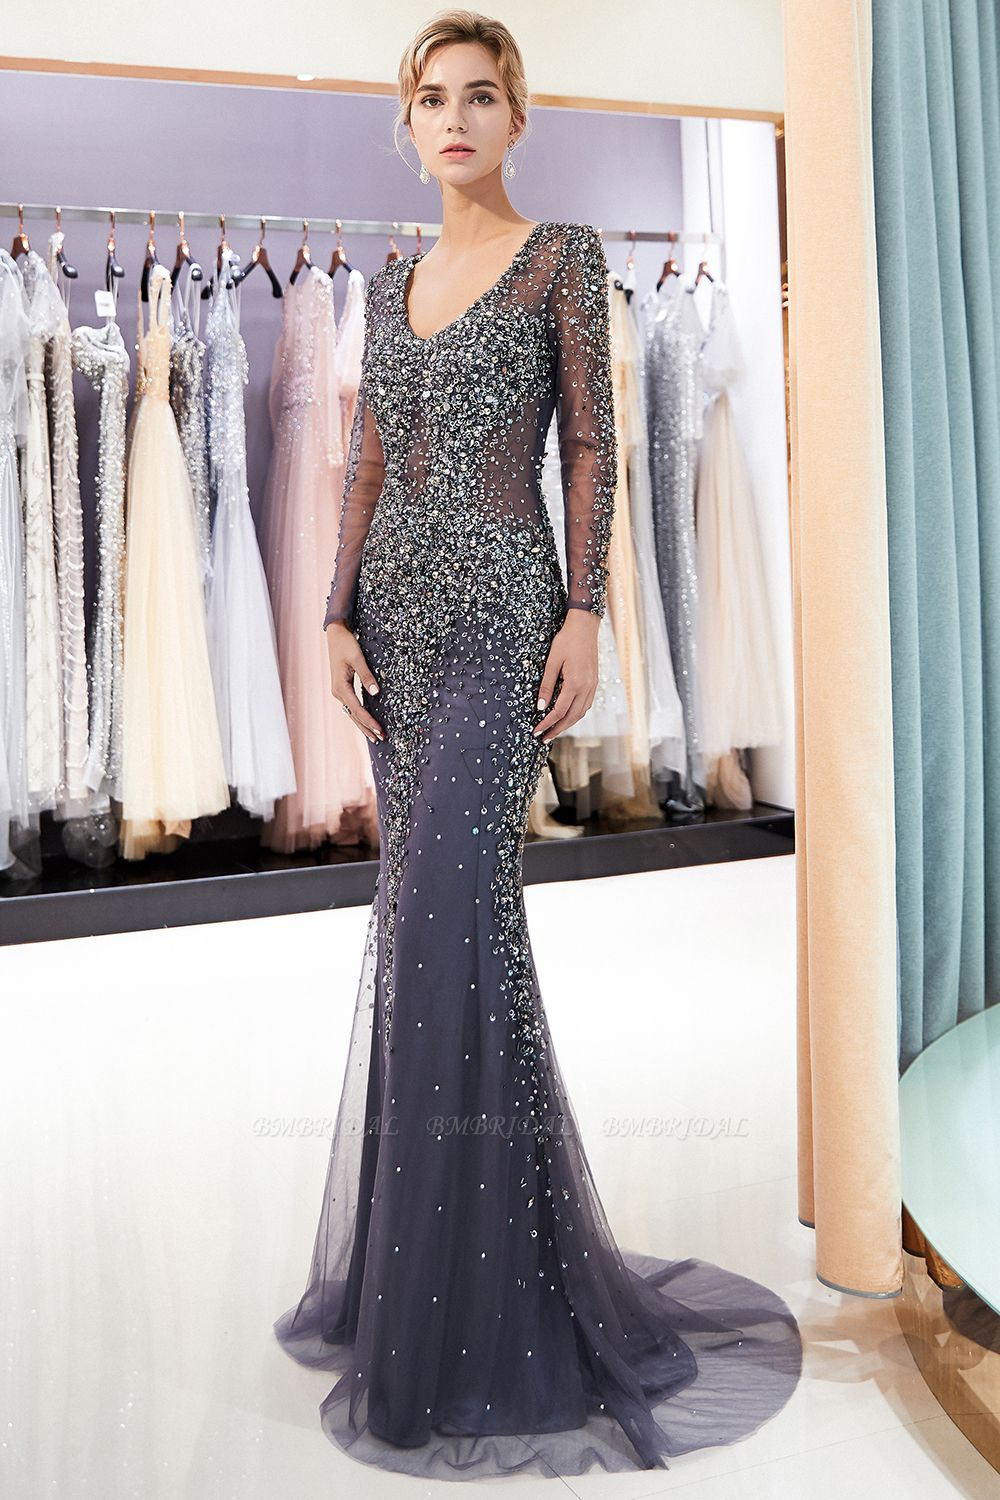 Afordable Mermaid V-Neck Long Sleeves Prom Dresses Sparkly Beading Evening Dresses On Sale